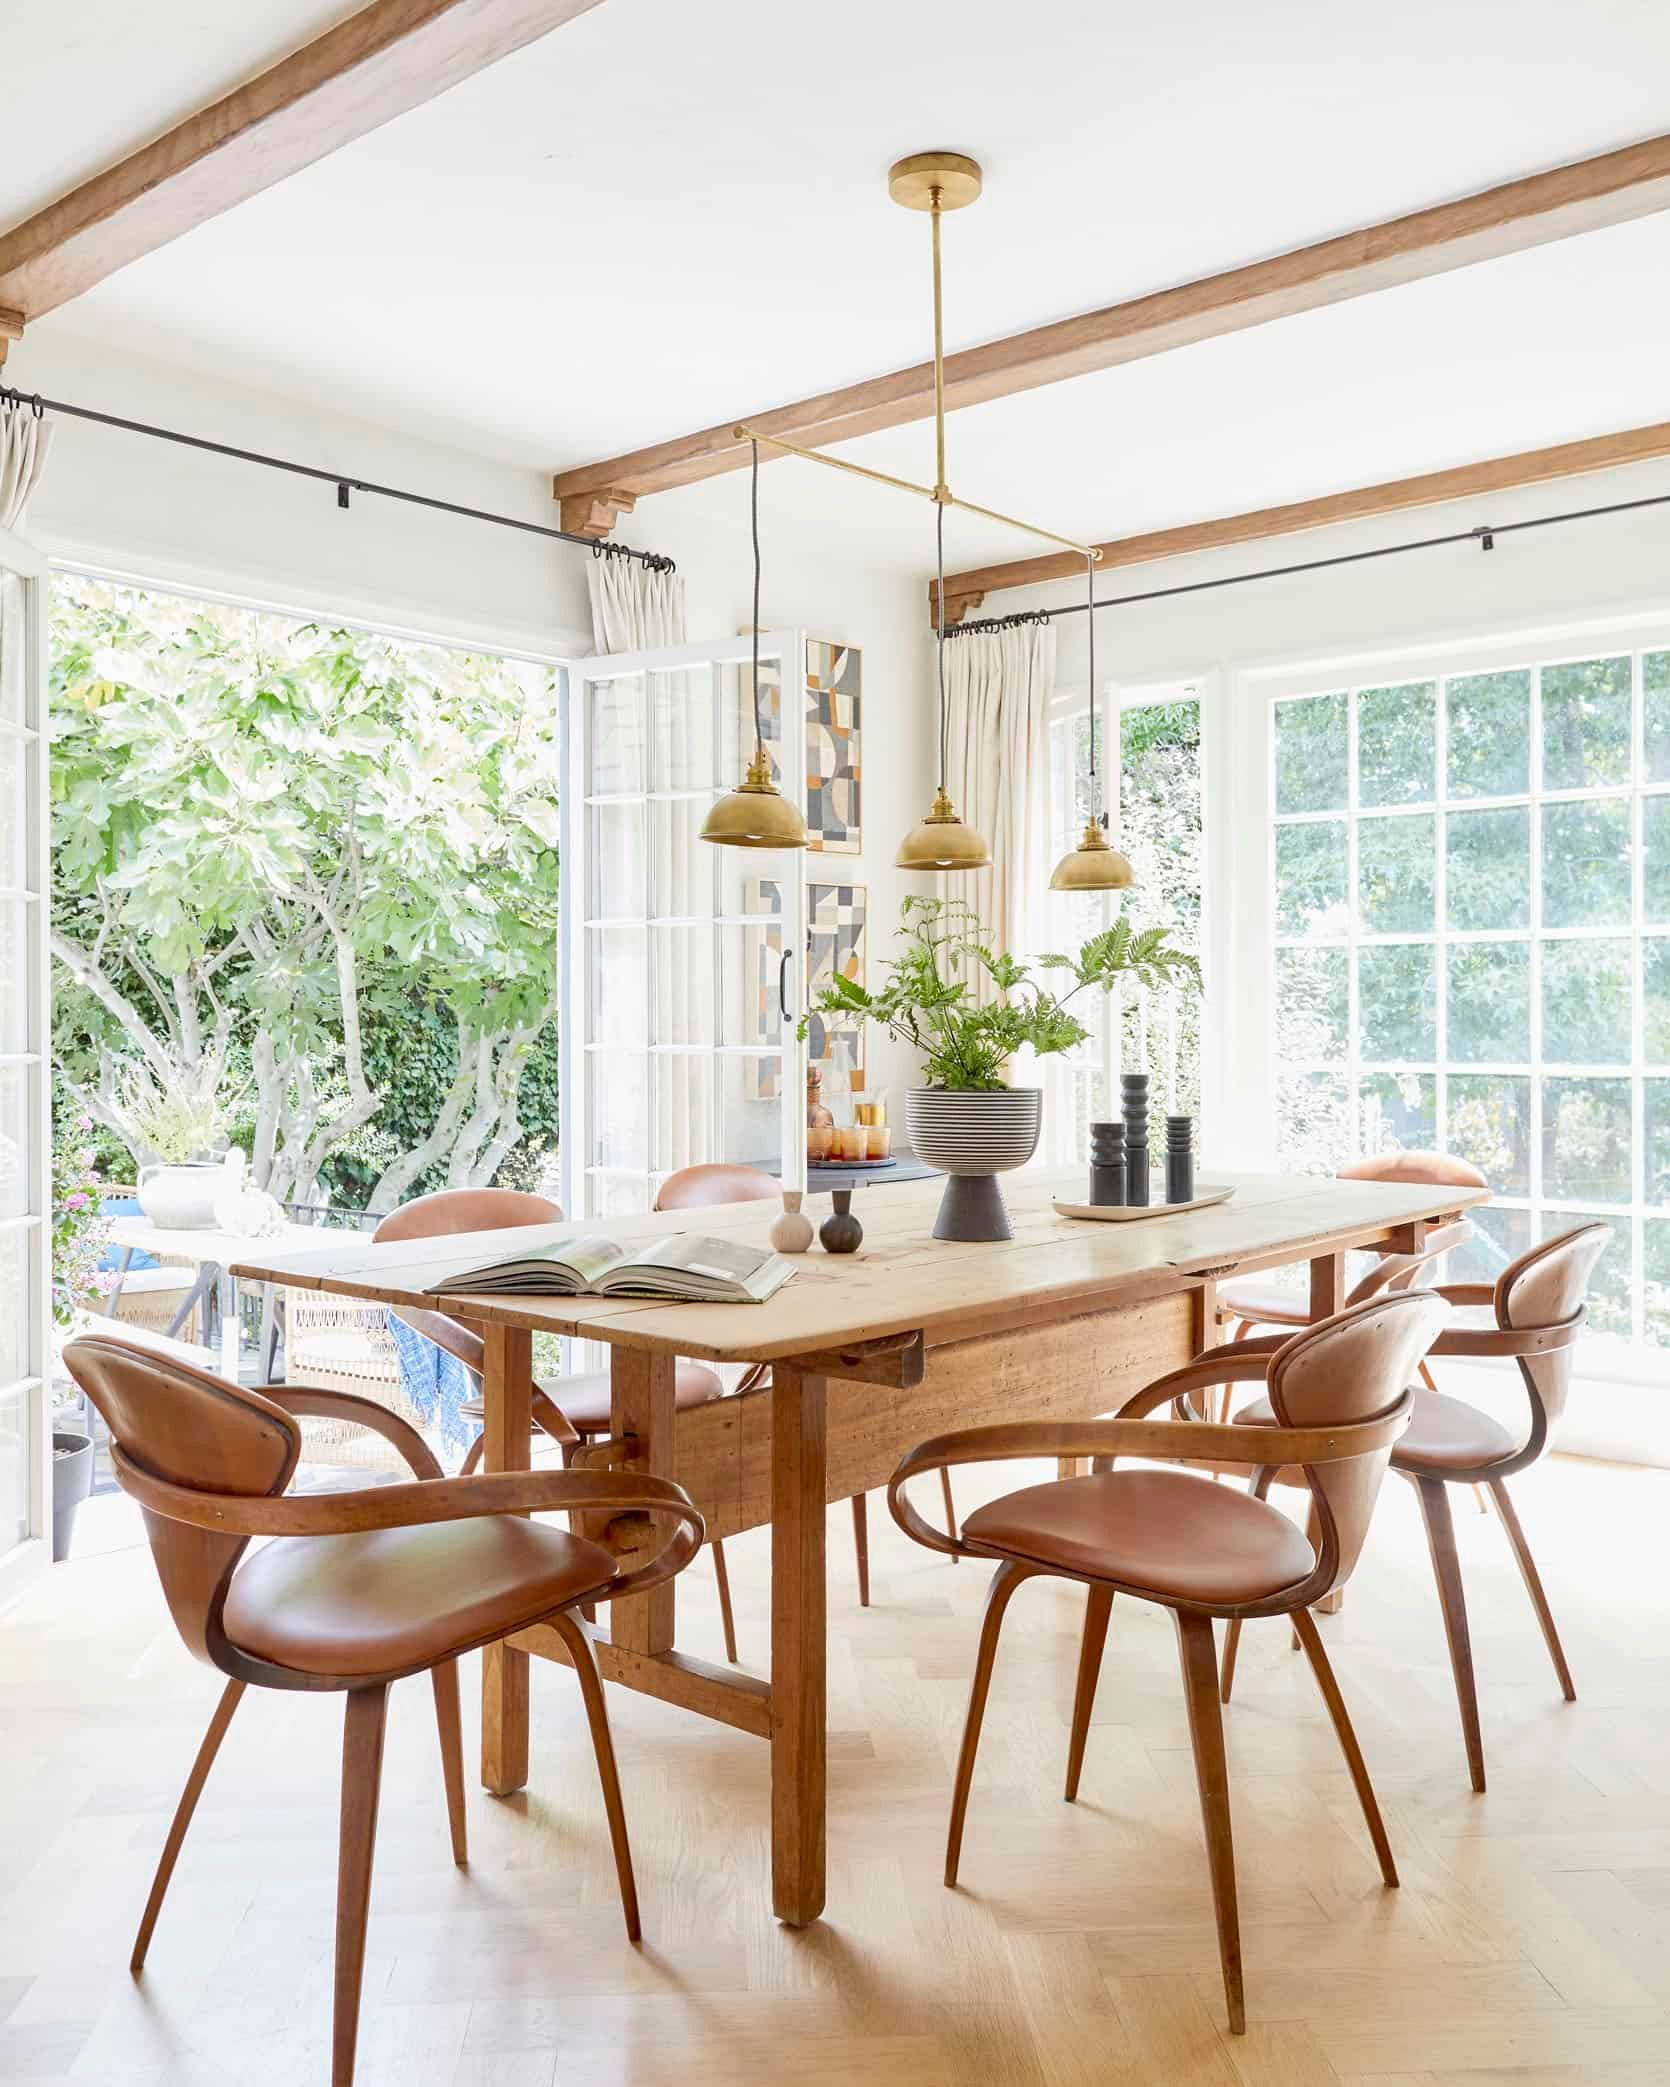 Styling To Sell How We Staged Our Dining Room And Kitchen With The Changes I Should Have Done Years Ago Emily Henderson Modern Dining Room Kitchen Dining Room Dining